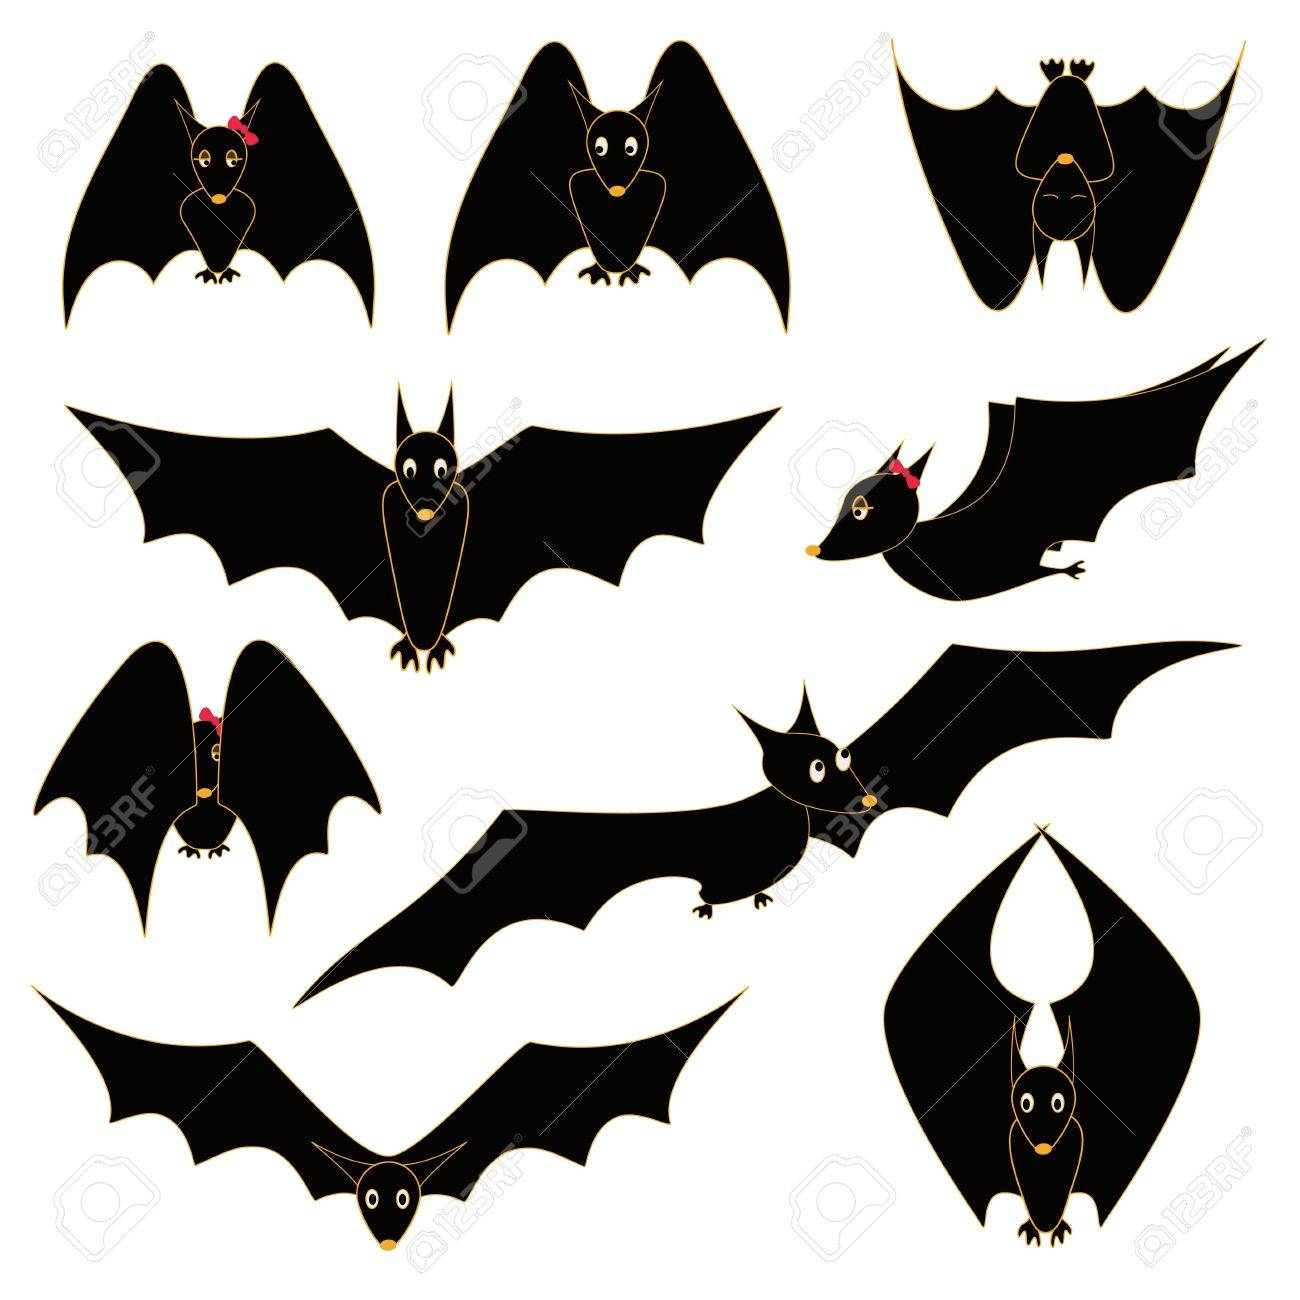 A Picture Of A Cartoon Bat illustration with set of funny cartoon bats